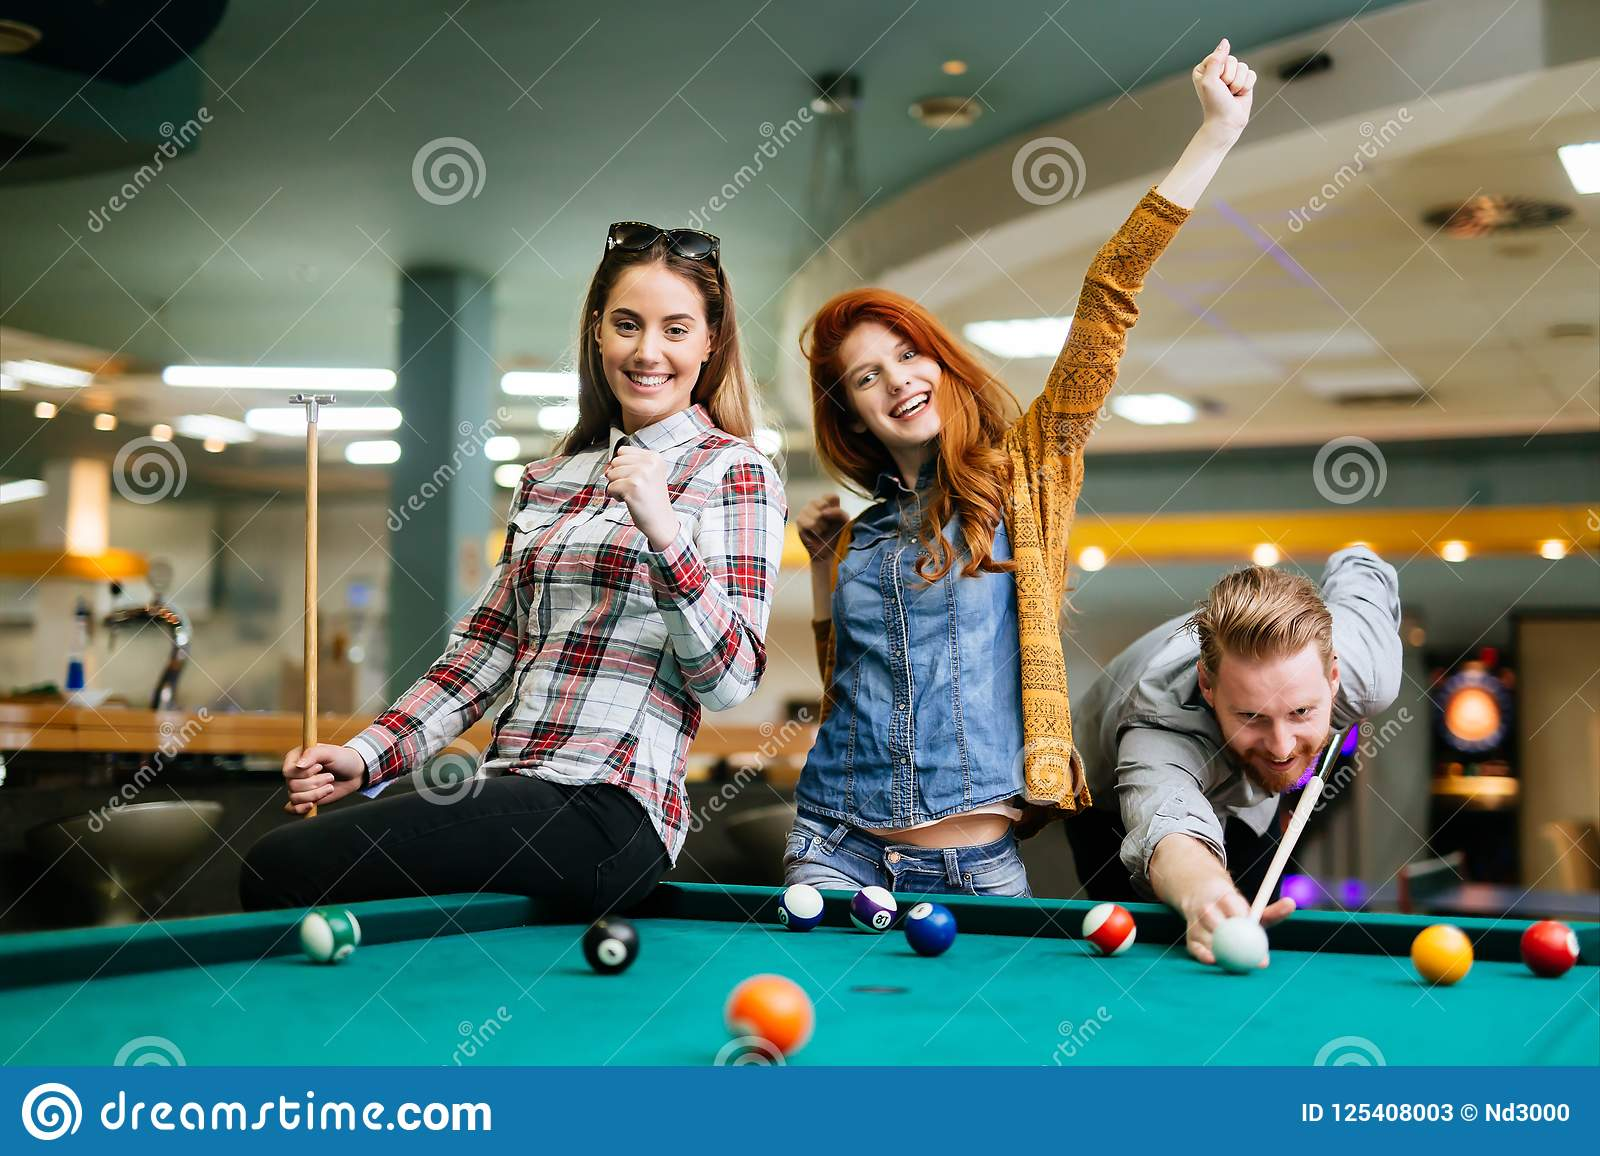 Dating site for pool players